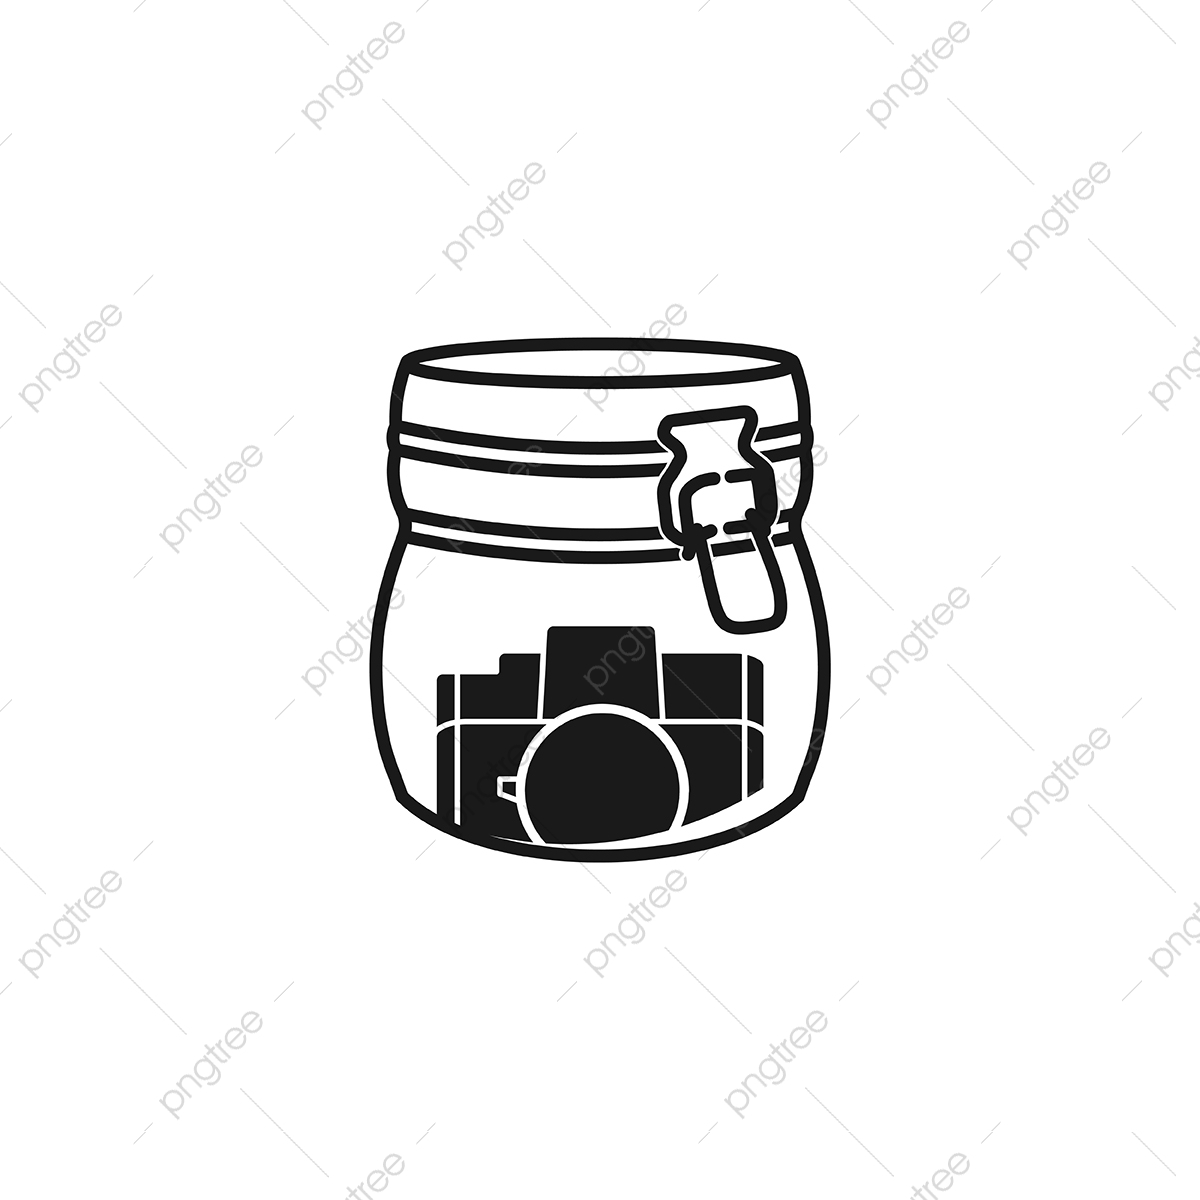 pngtree jar and photography icon logo design inspiration png image 5008781